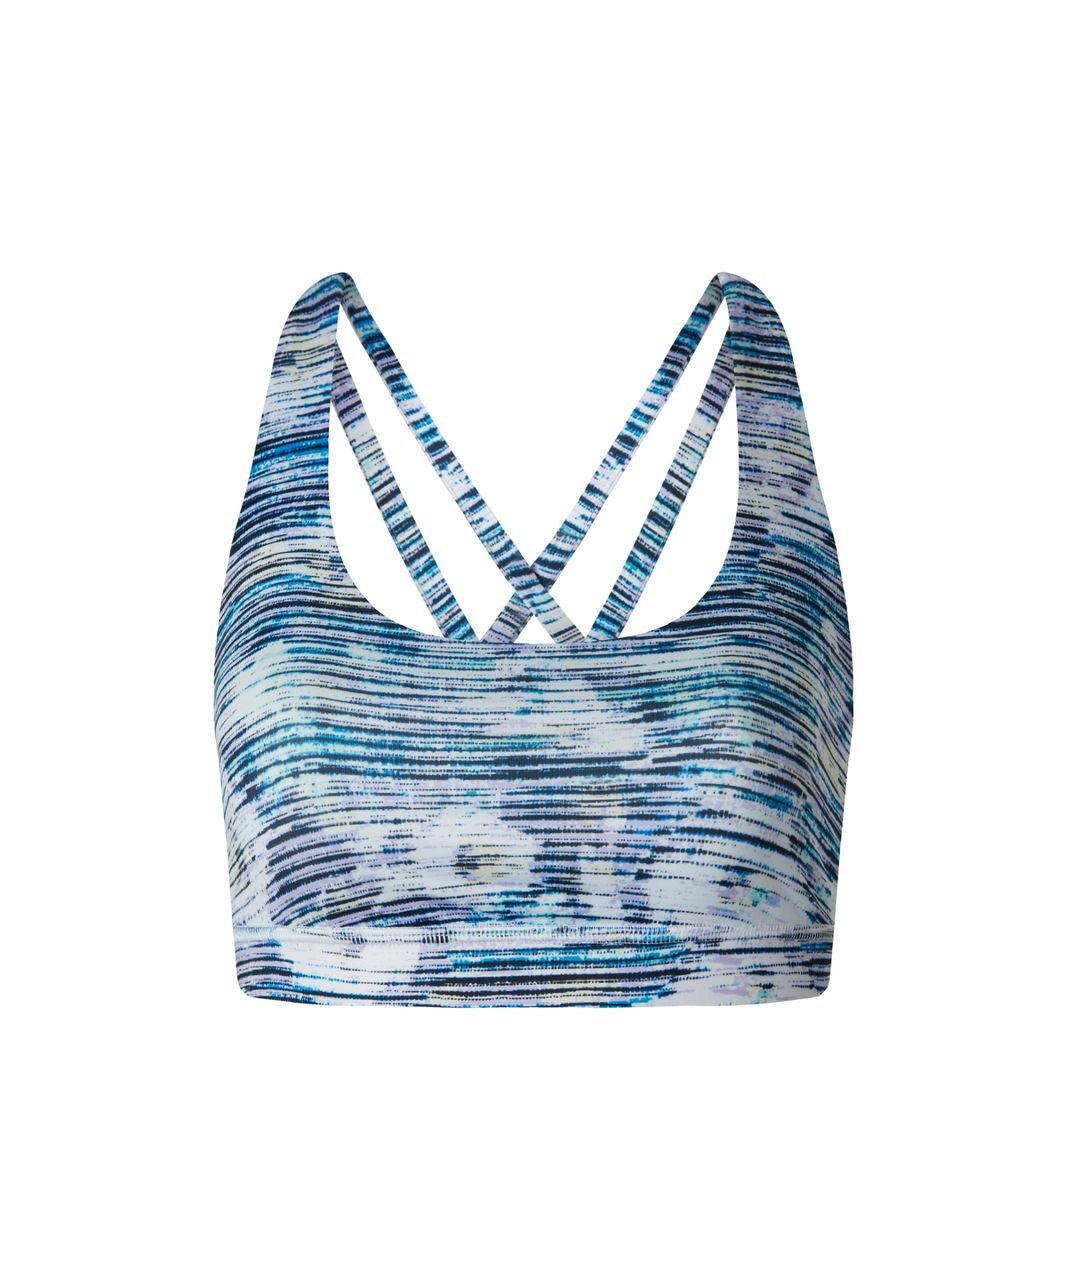 Lululemon Energy Bra - Blurry Belle Multi